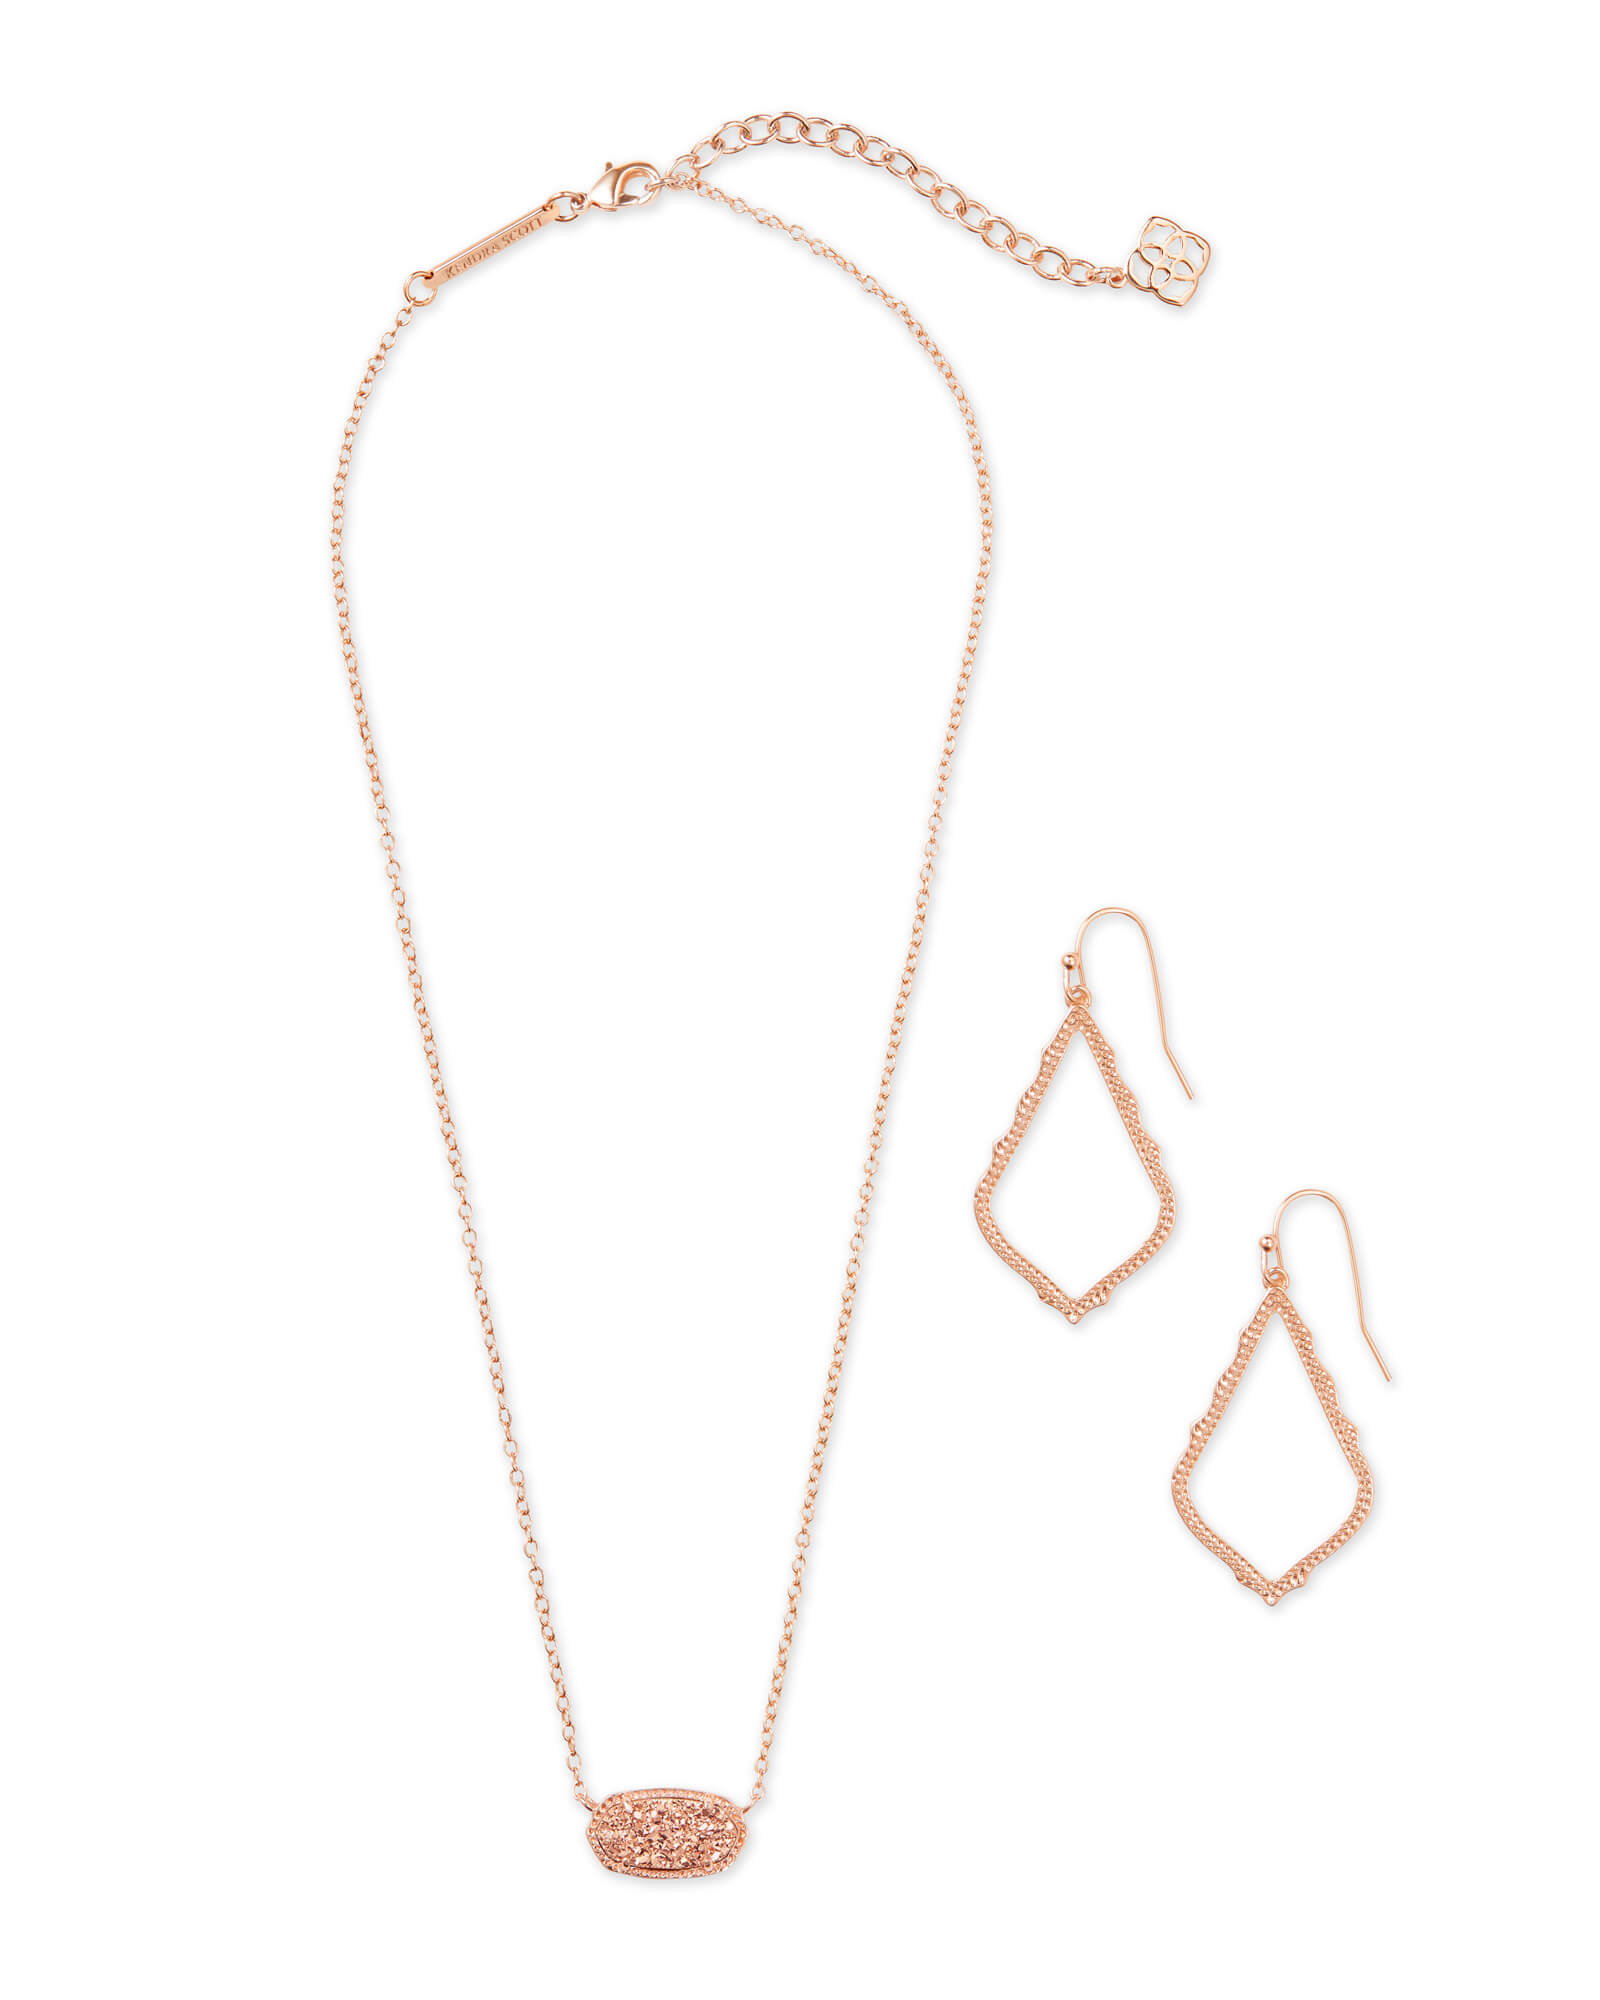 Sophia Earrings & Elisa Necklaces Gift Set in Rose Gold